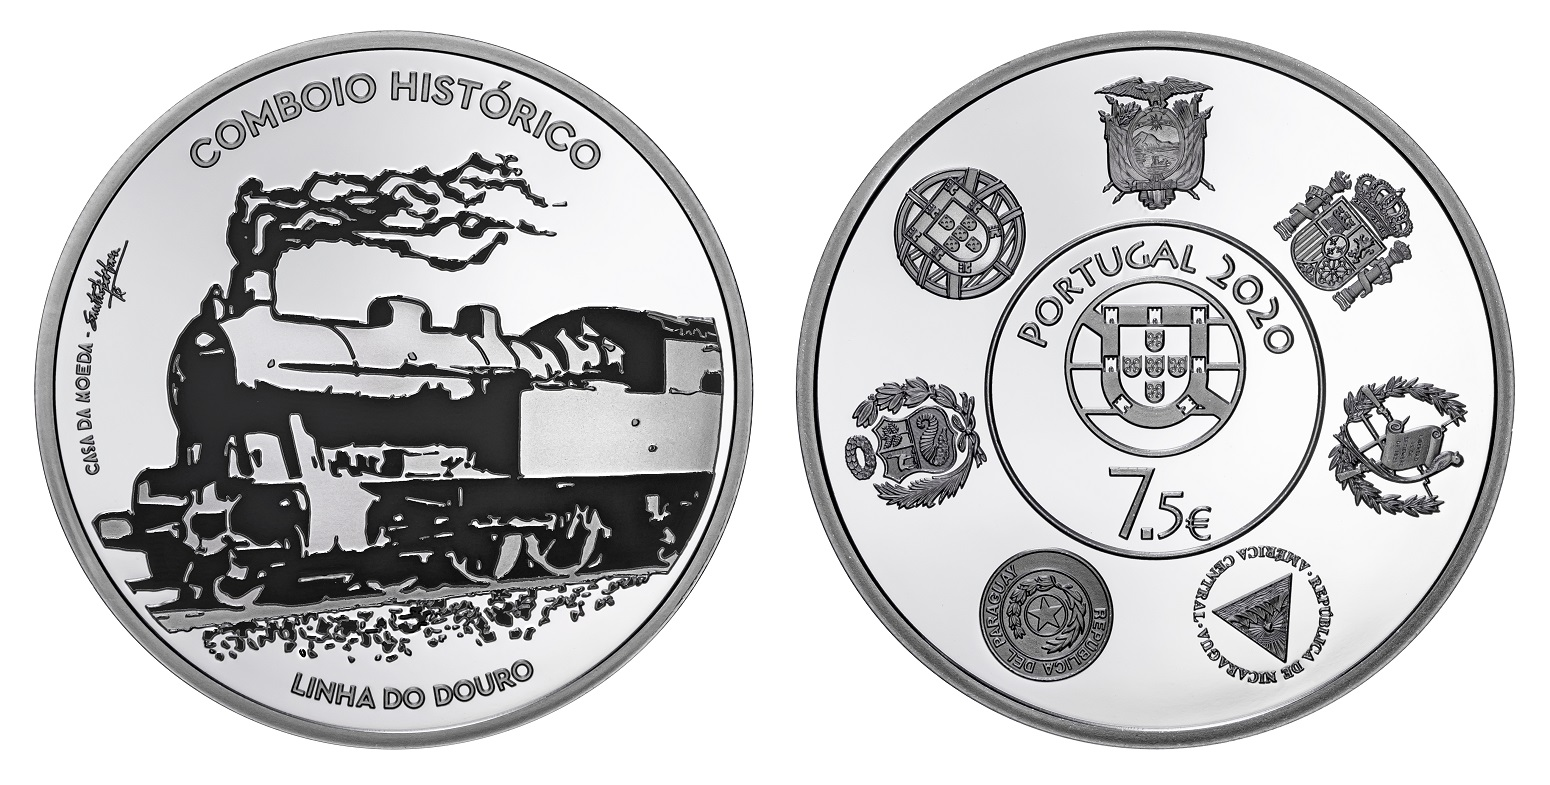 (EUR15.ComBU&BE.2020.1022792) 7.5 euro Portugal 2020 Proof silver - Historical trains (zoom)